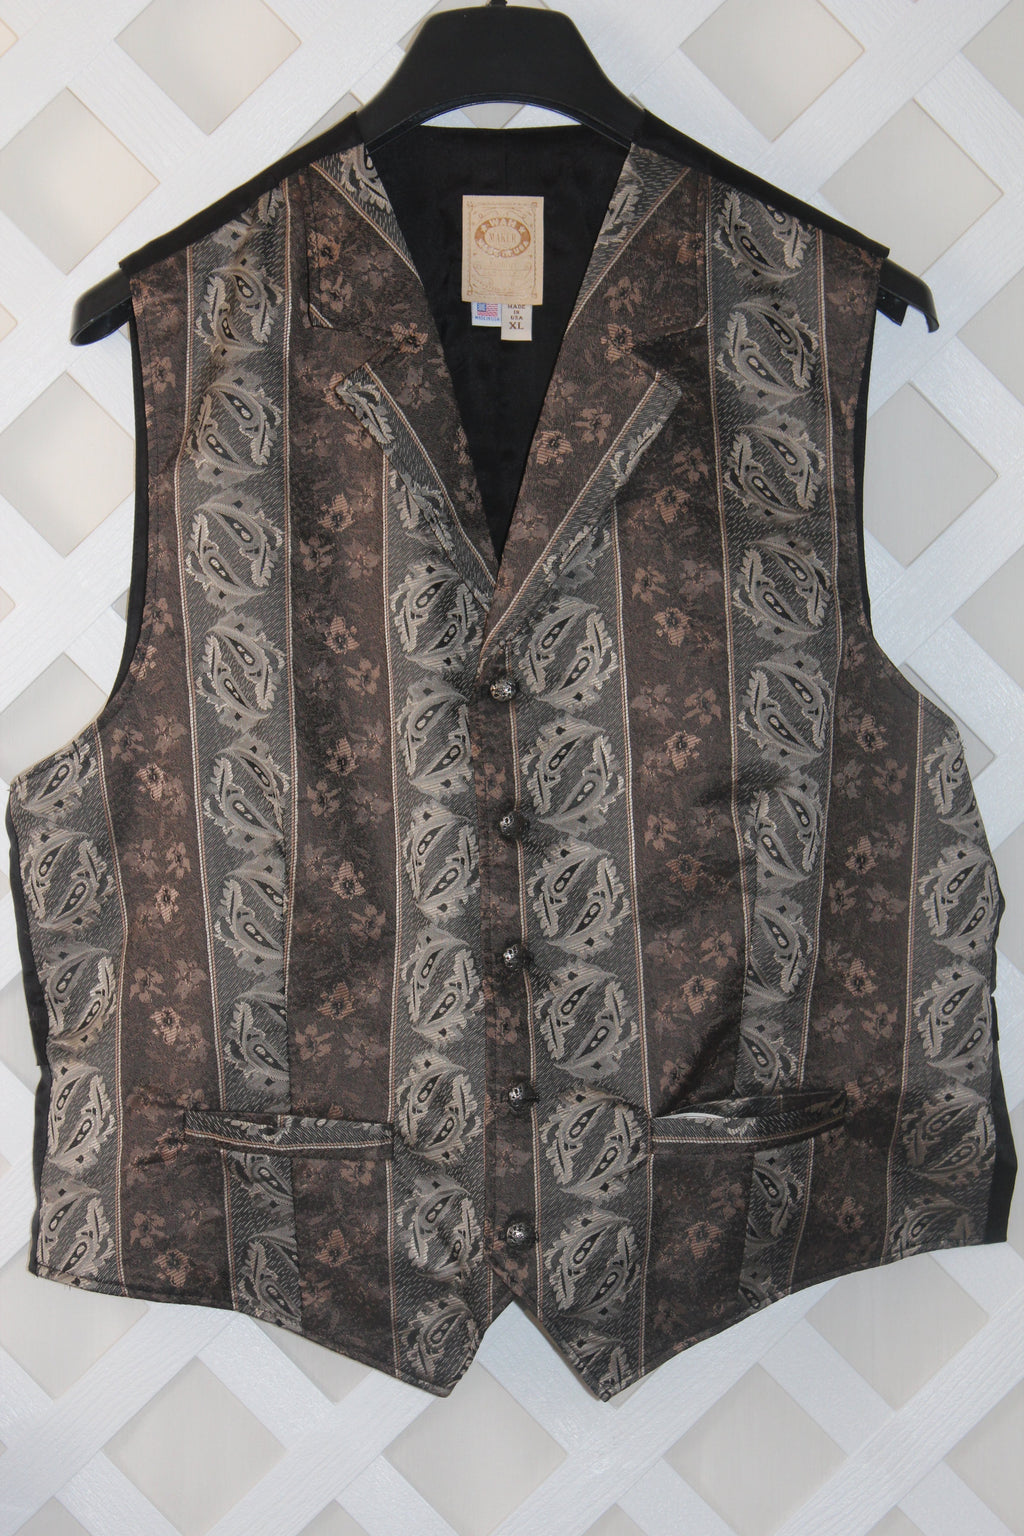 Men's Wahmaker Old West Victorian Brocade Vest-XL - Blanche's Place